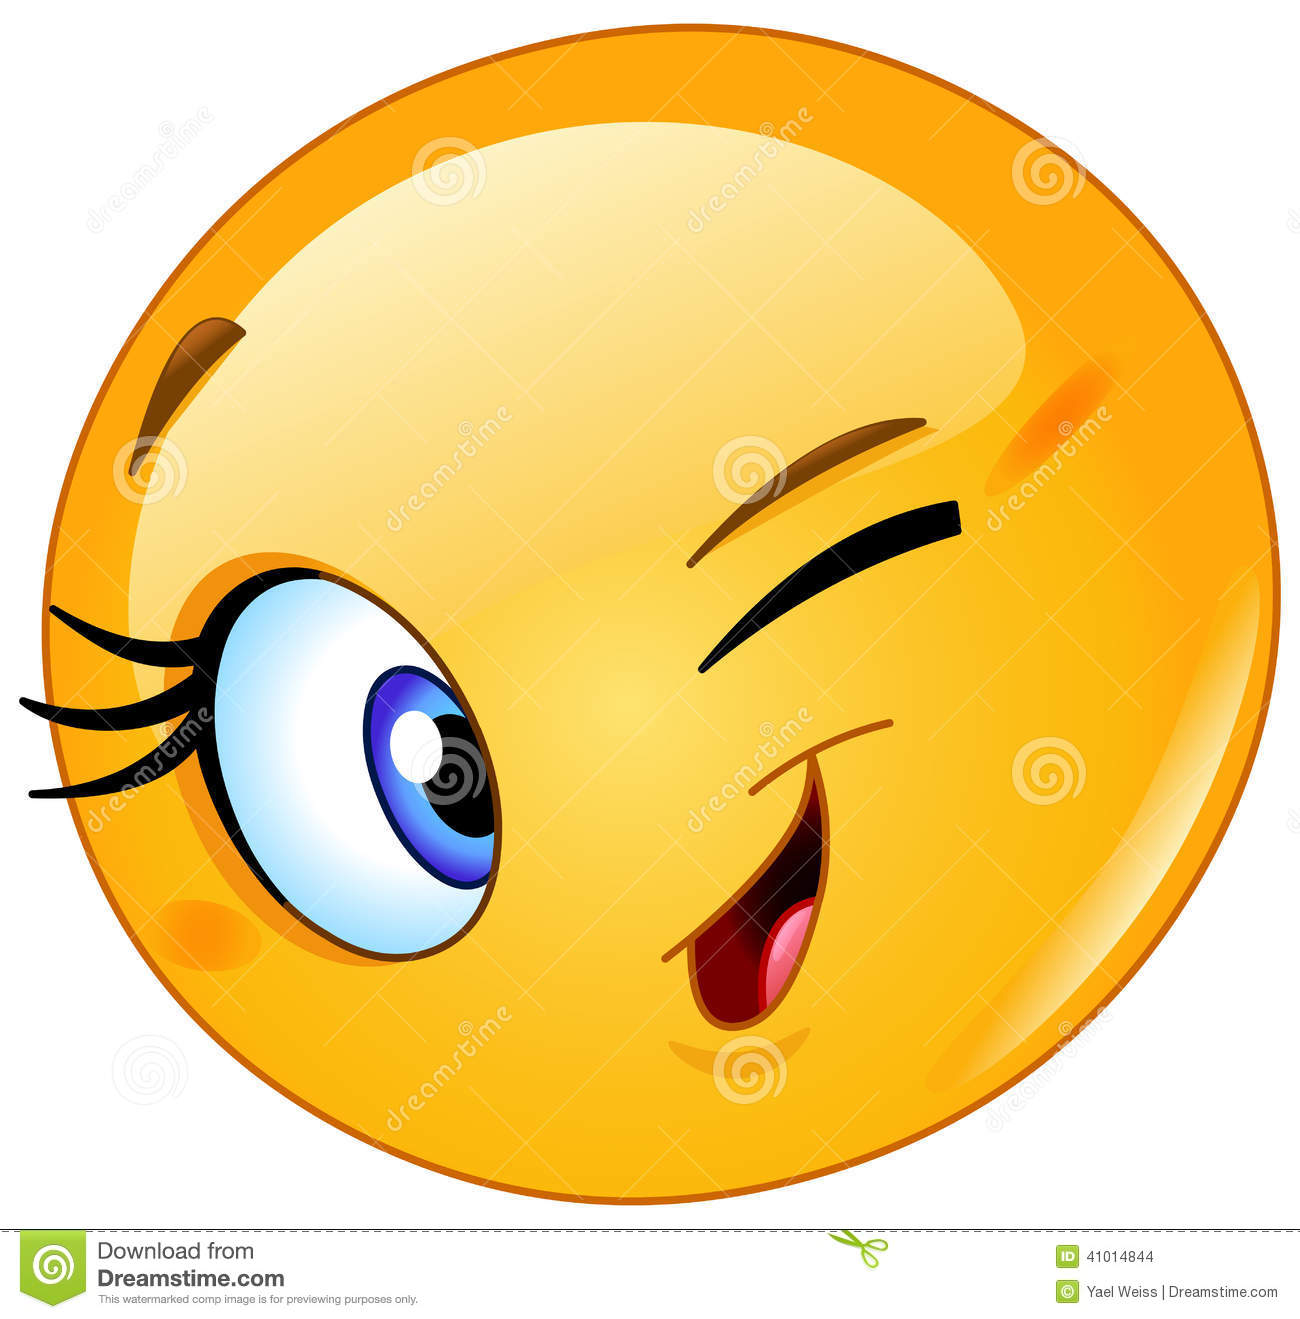 Female Happy Face female thumbs up smiley face clipart - clipart kid